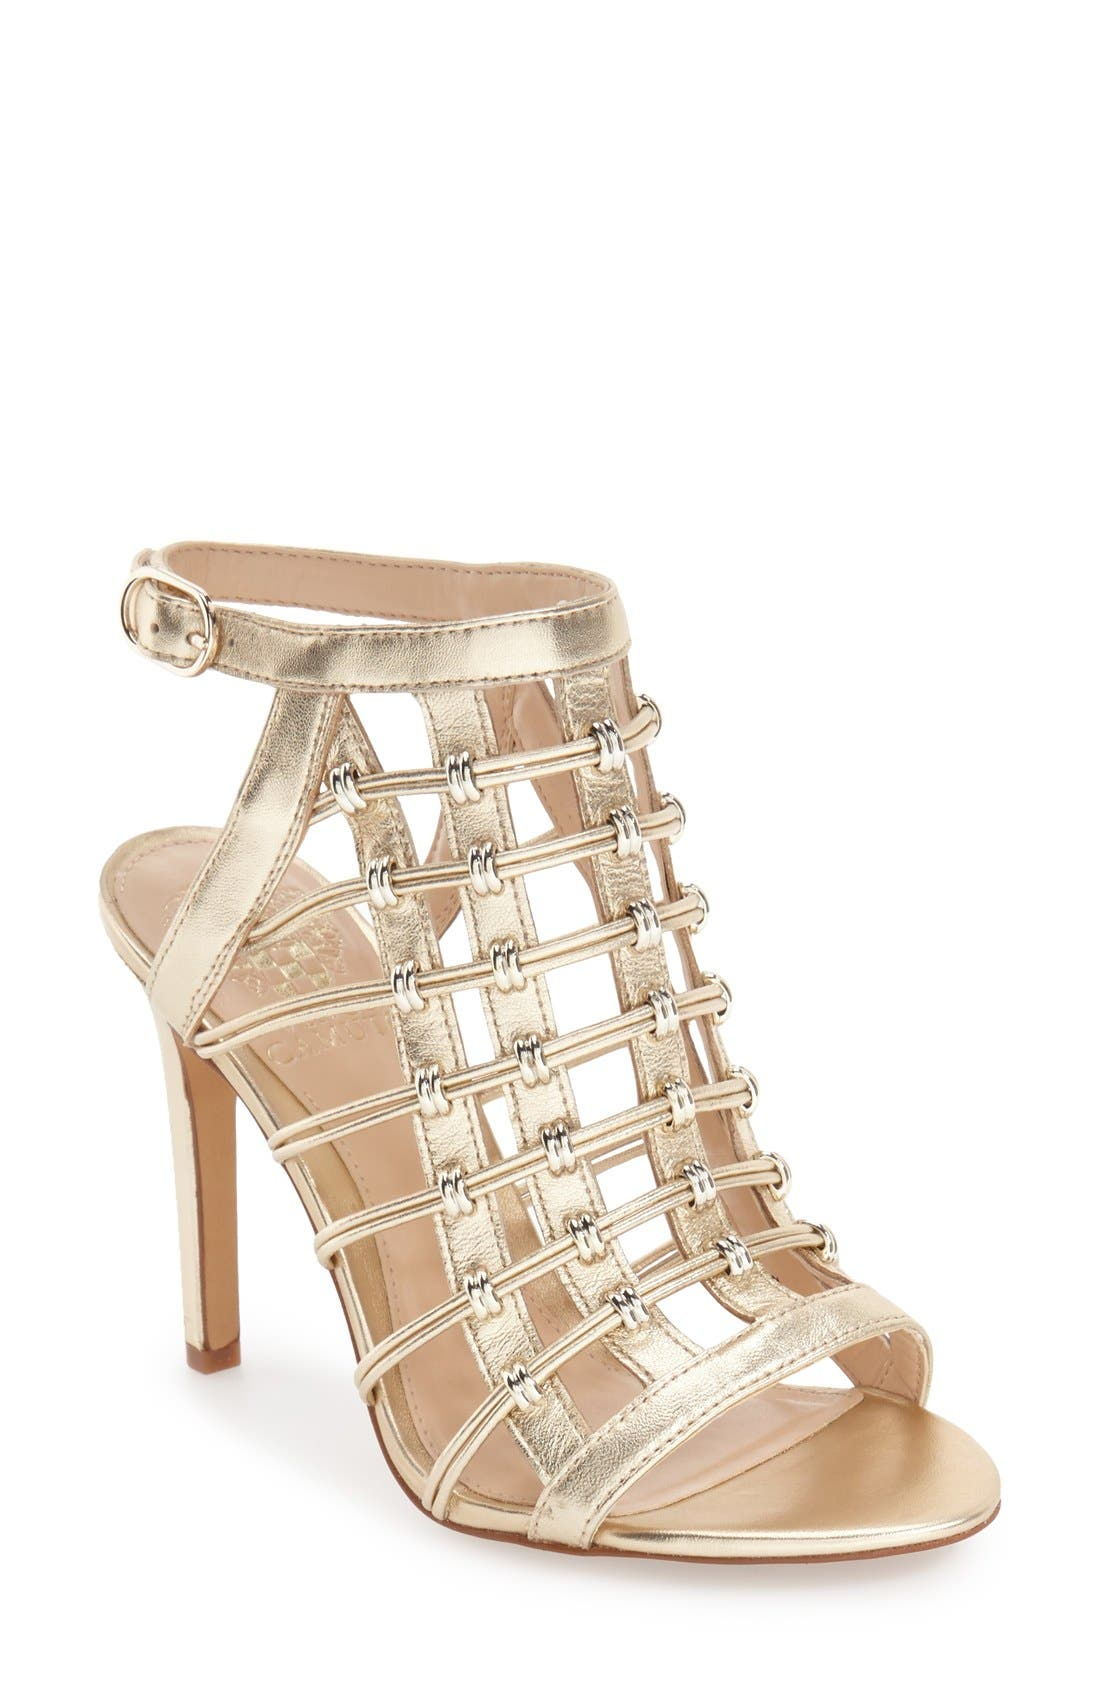 Main Image - Vince Camuto 'Kalare' Cage Sandal (Women)